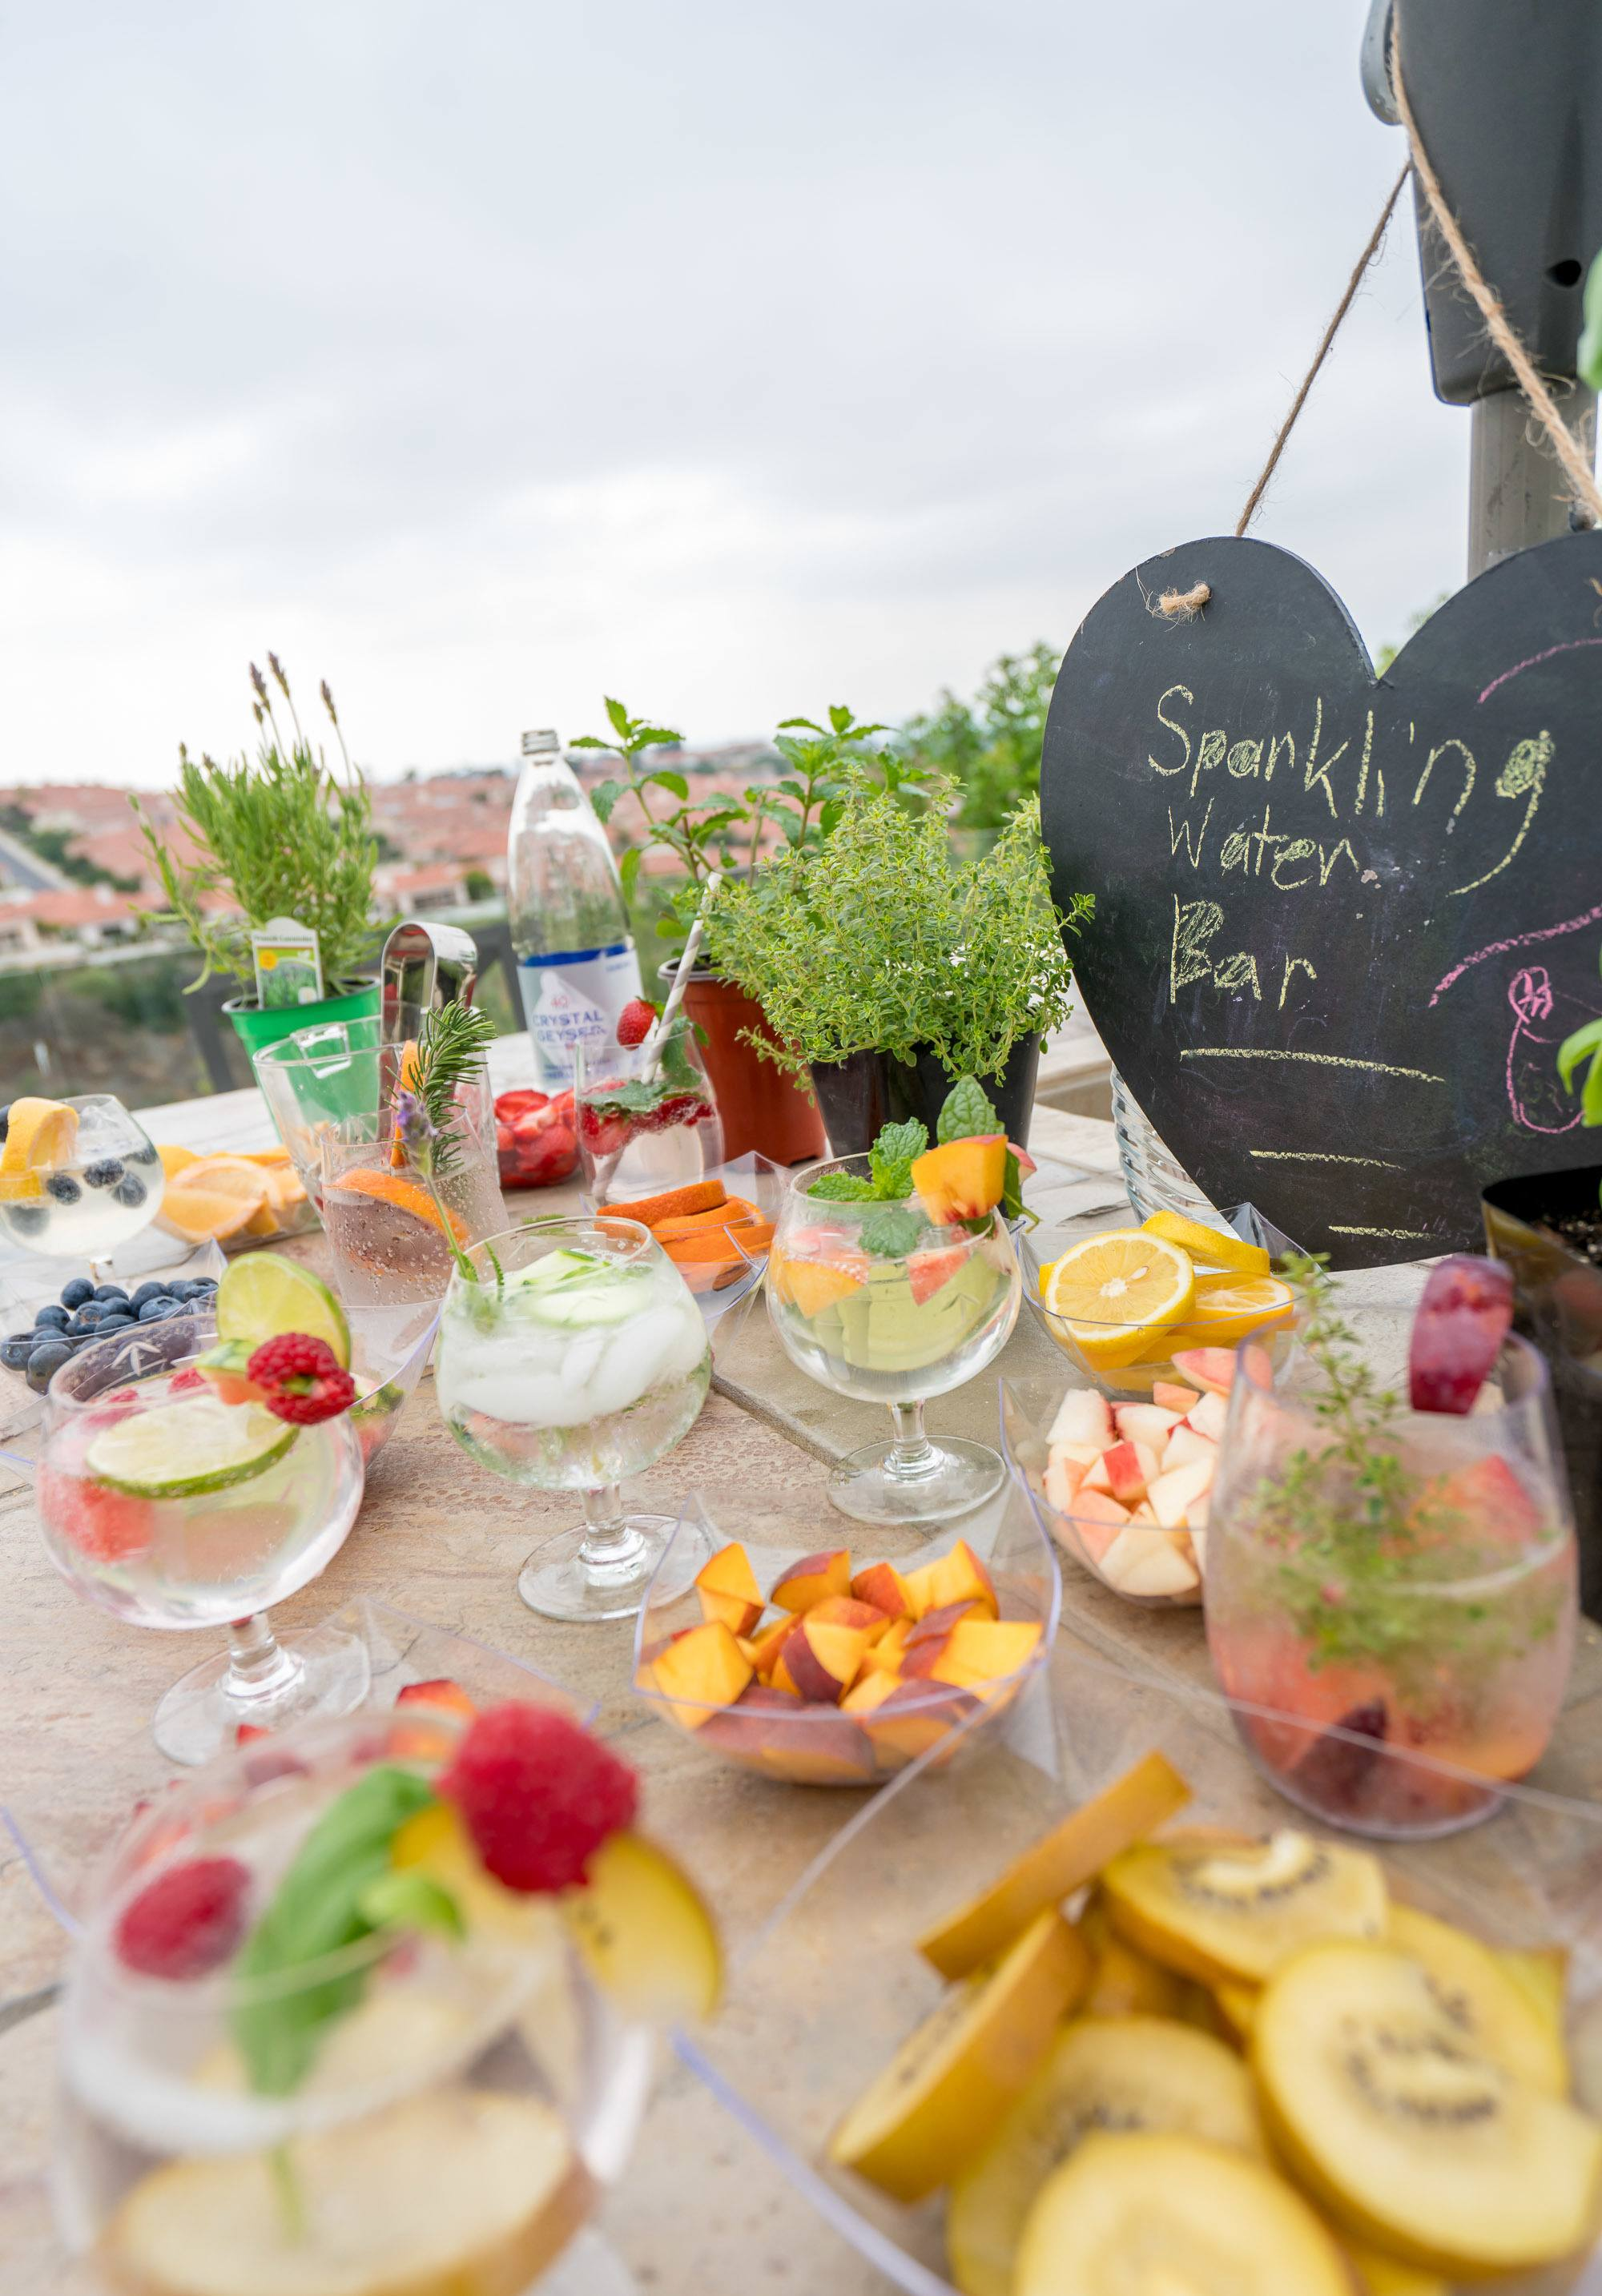 Party ideas: Make a sparkling water bar with fruit and herbs.